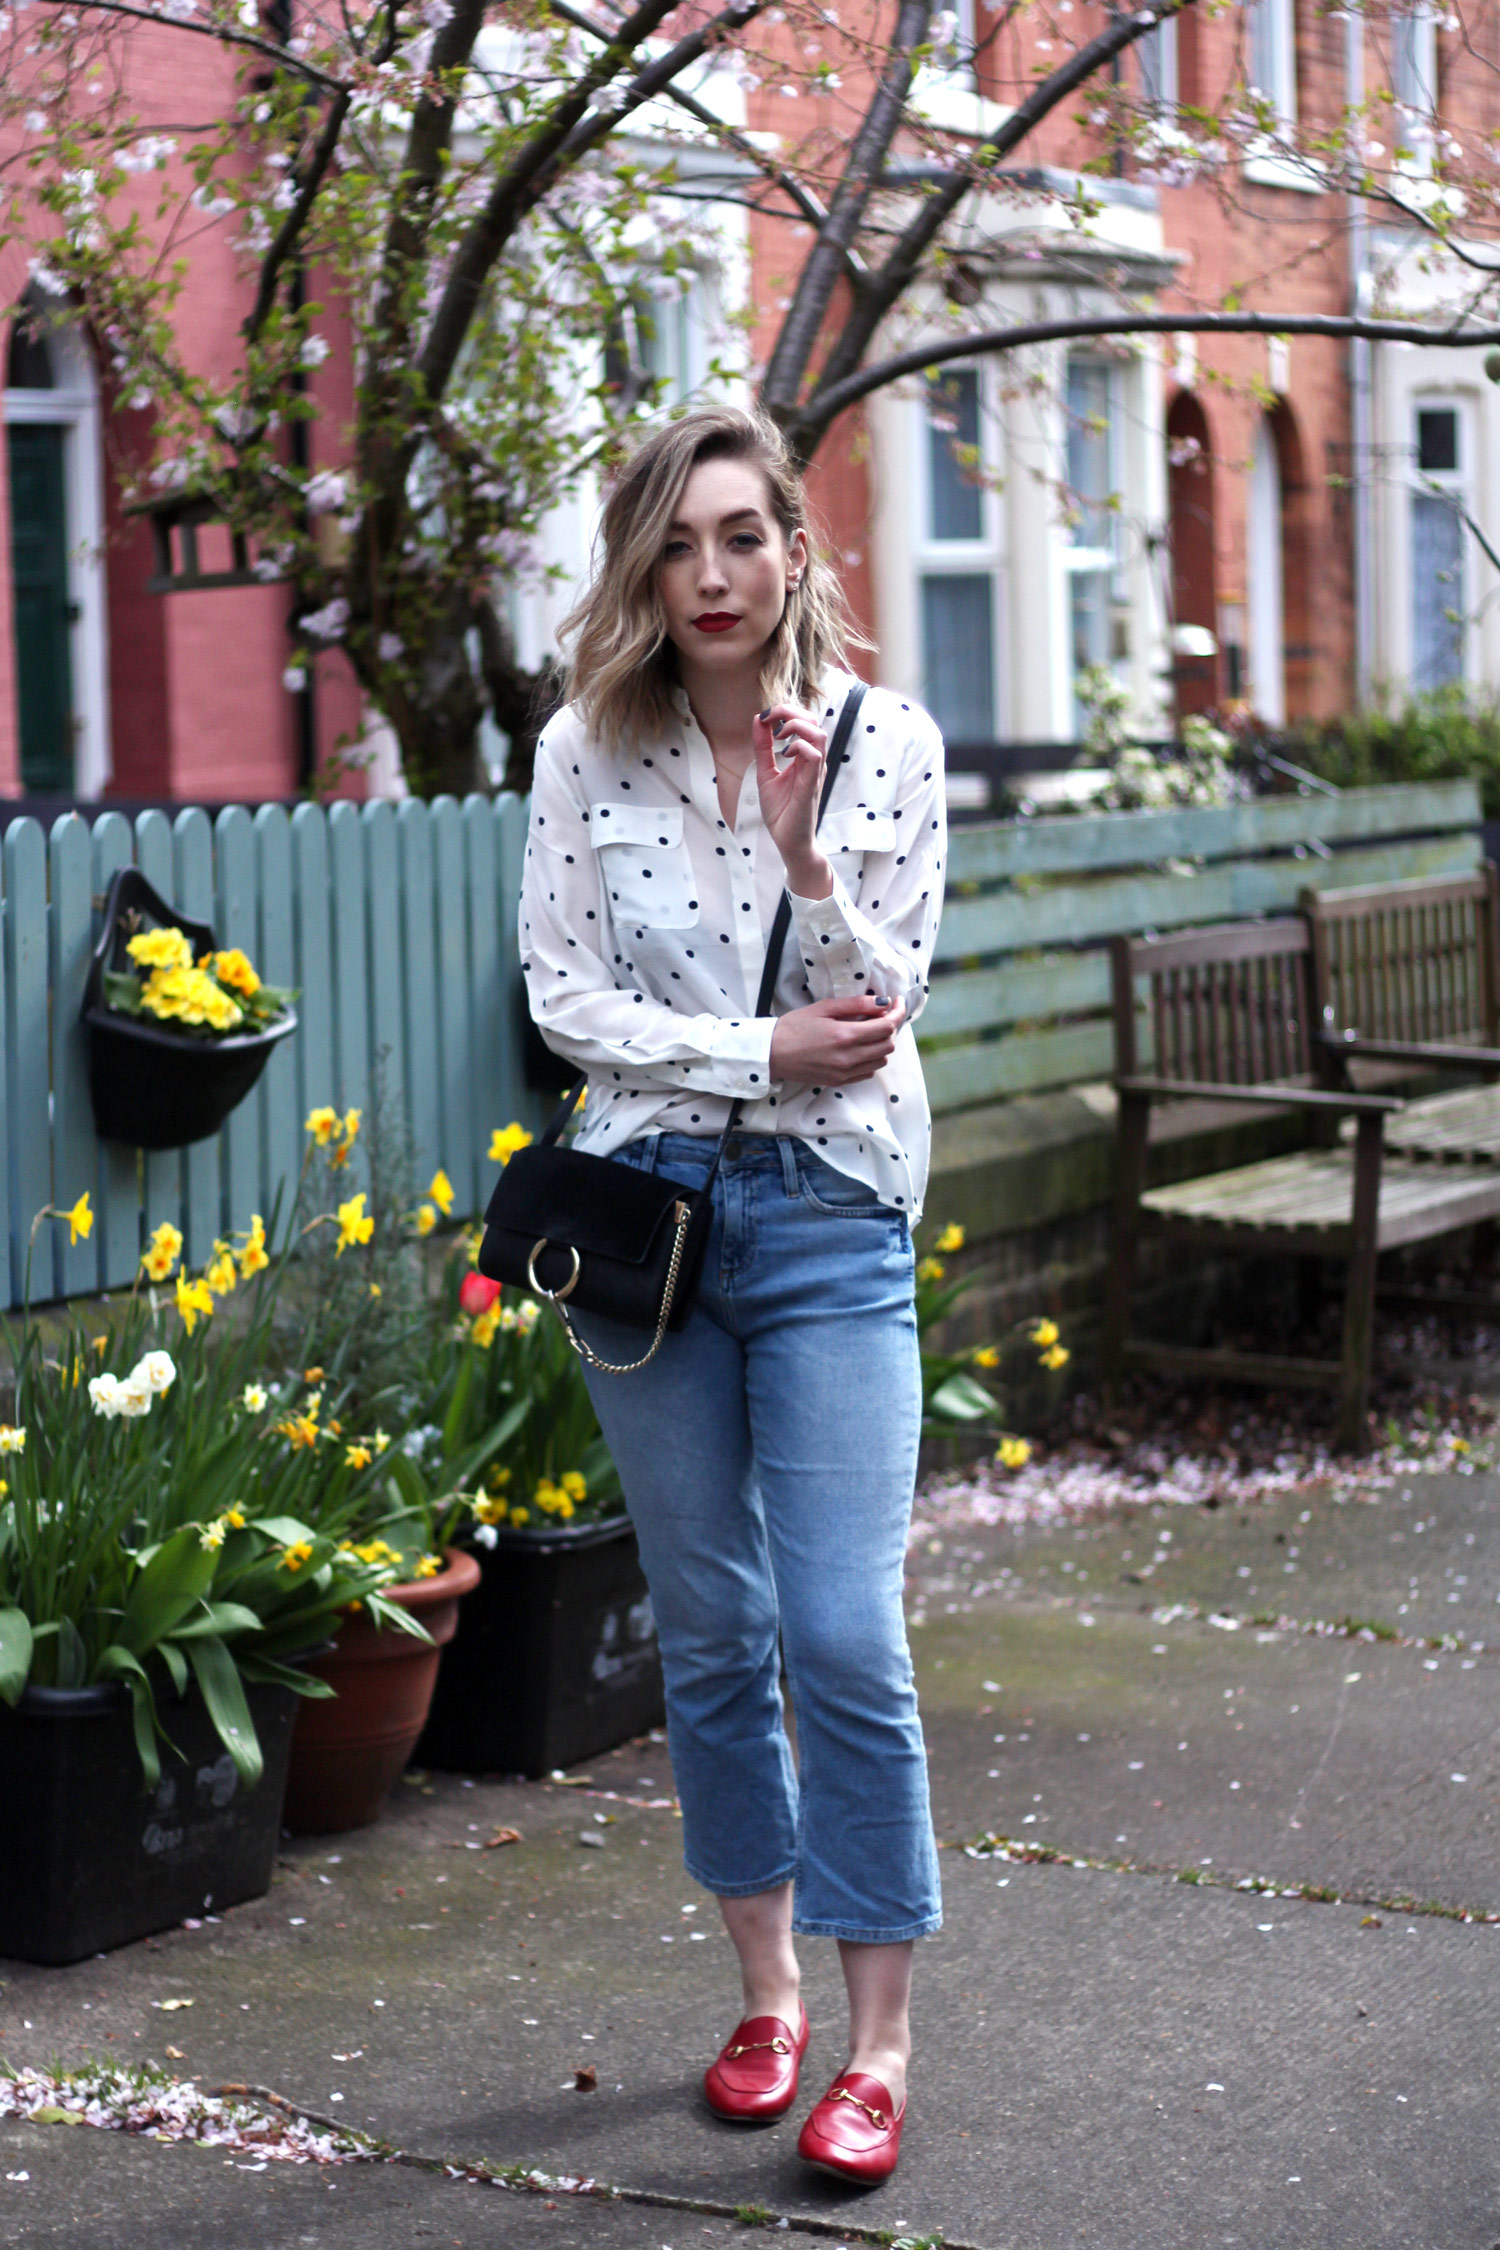 boden-polkadot-shirt-BDG-jeans-gucci-red-jordaan-loafers